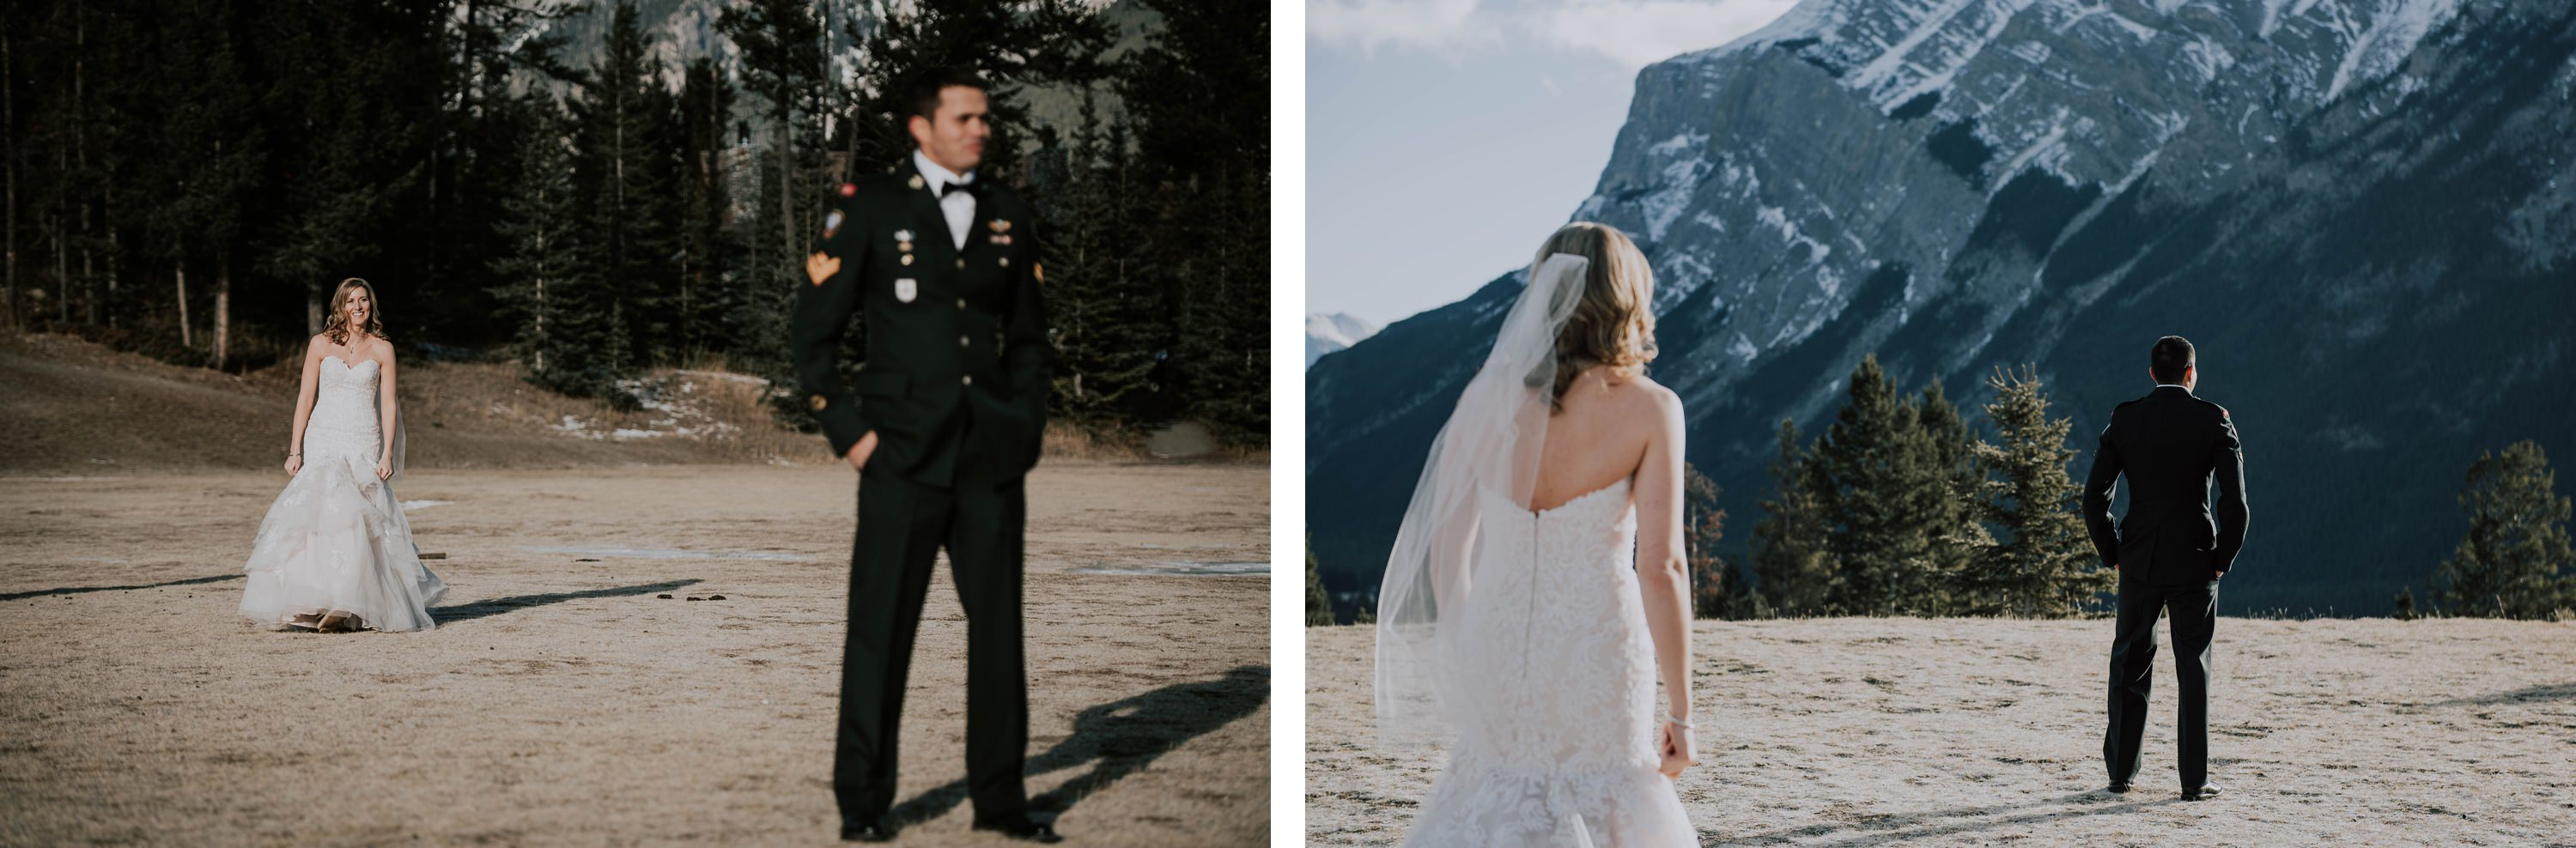 first look between bride and groom in Banff winter wedding